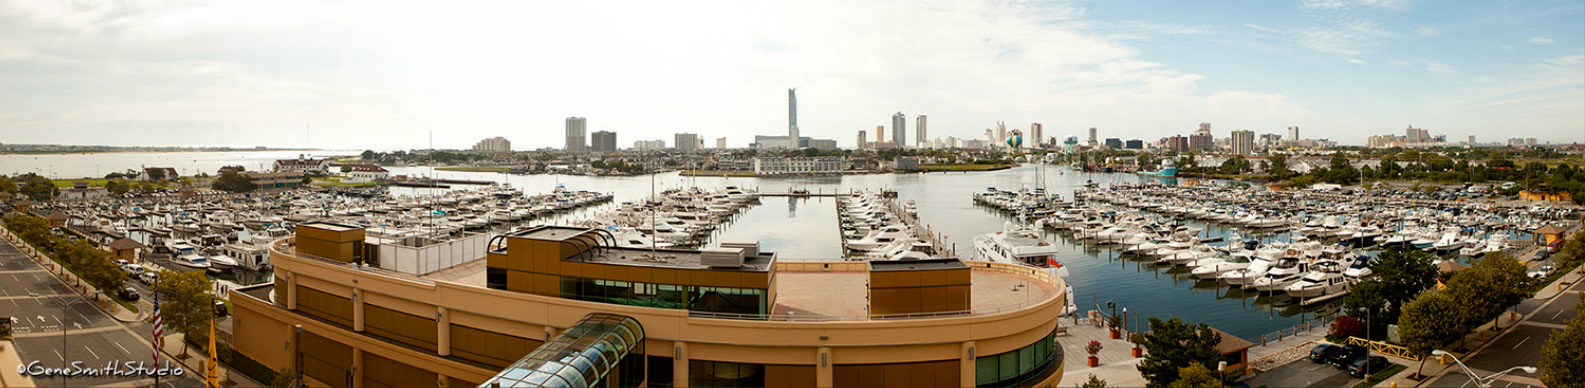 Panoramic view of Senator Frank Farley State Marina Atlantic City, NJ